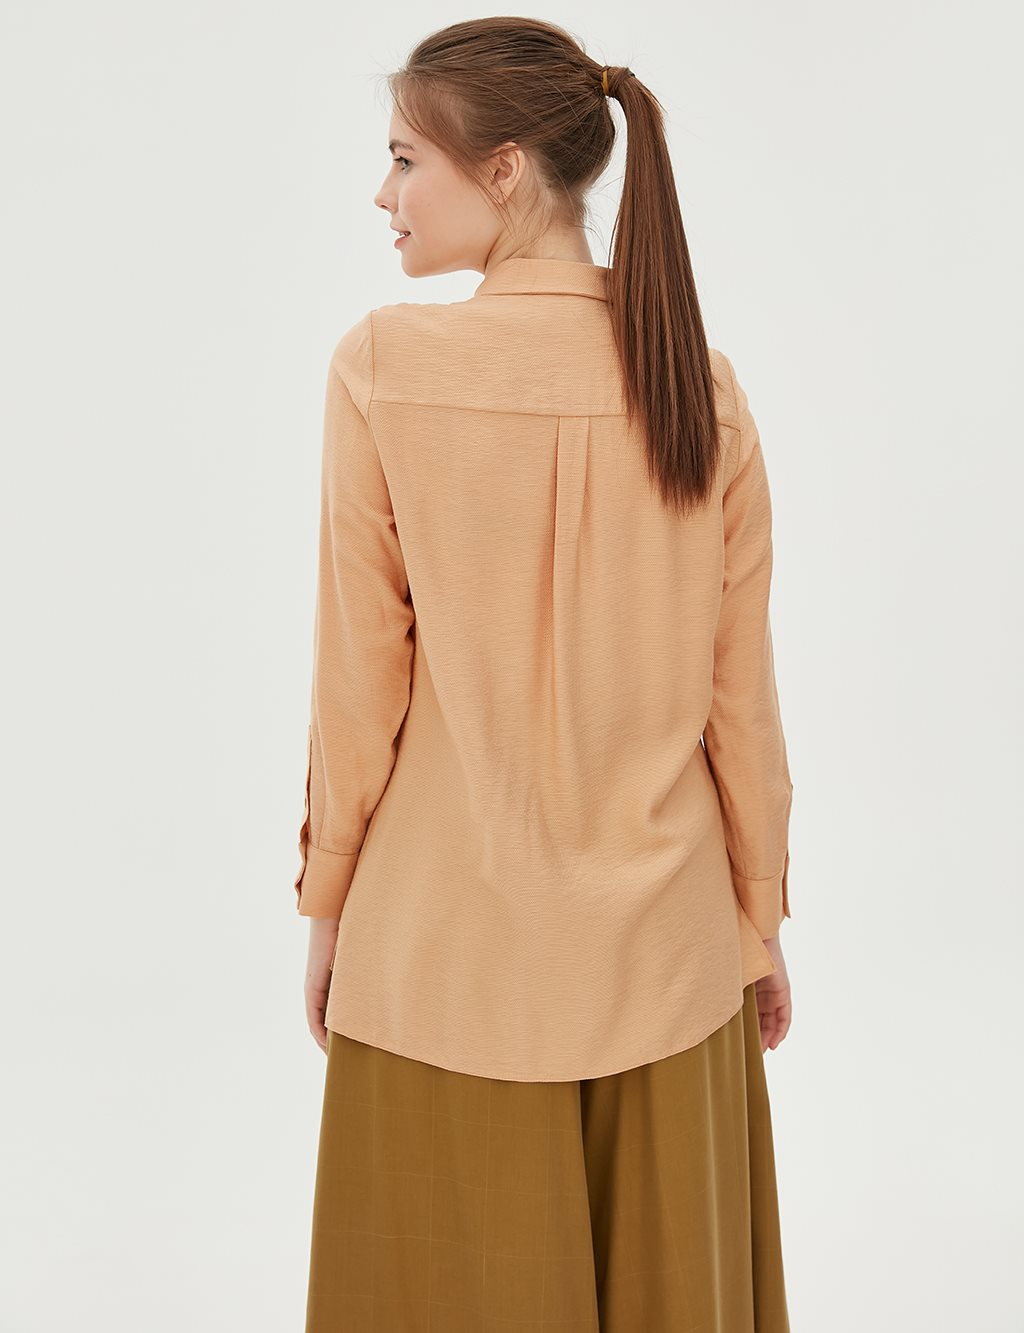 Ruched Detailed Blouse B20 10092 Beige